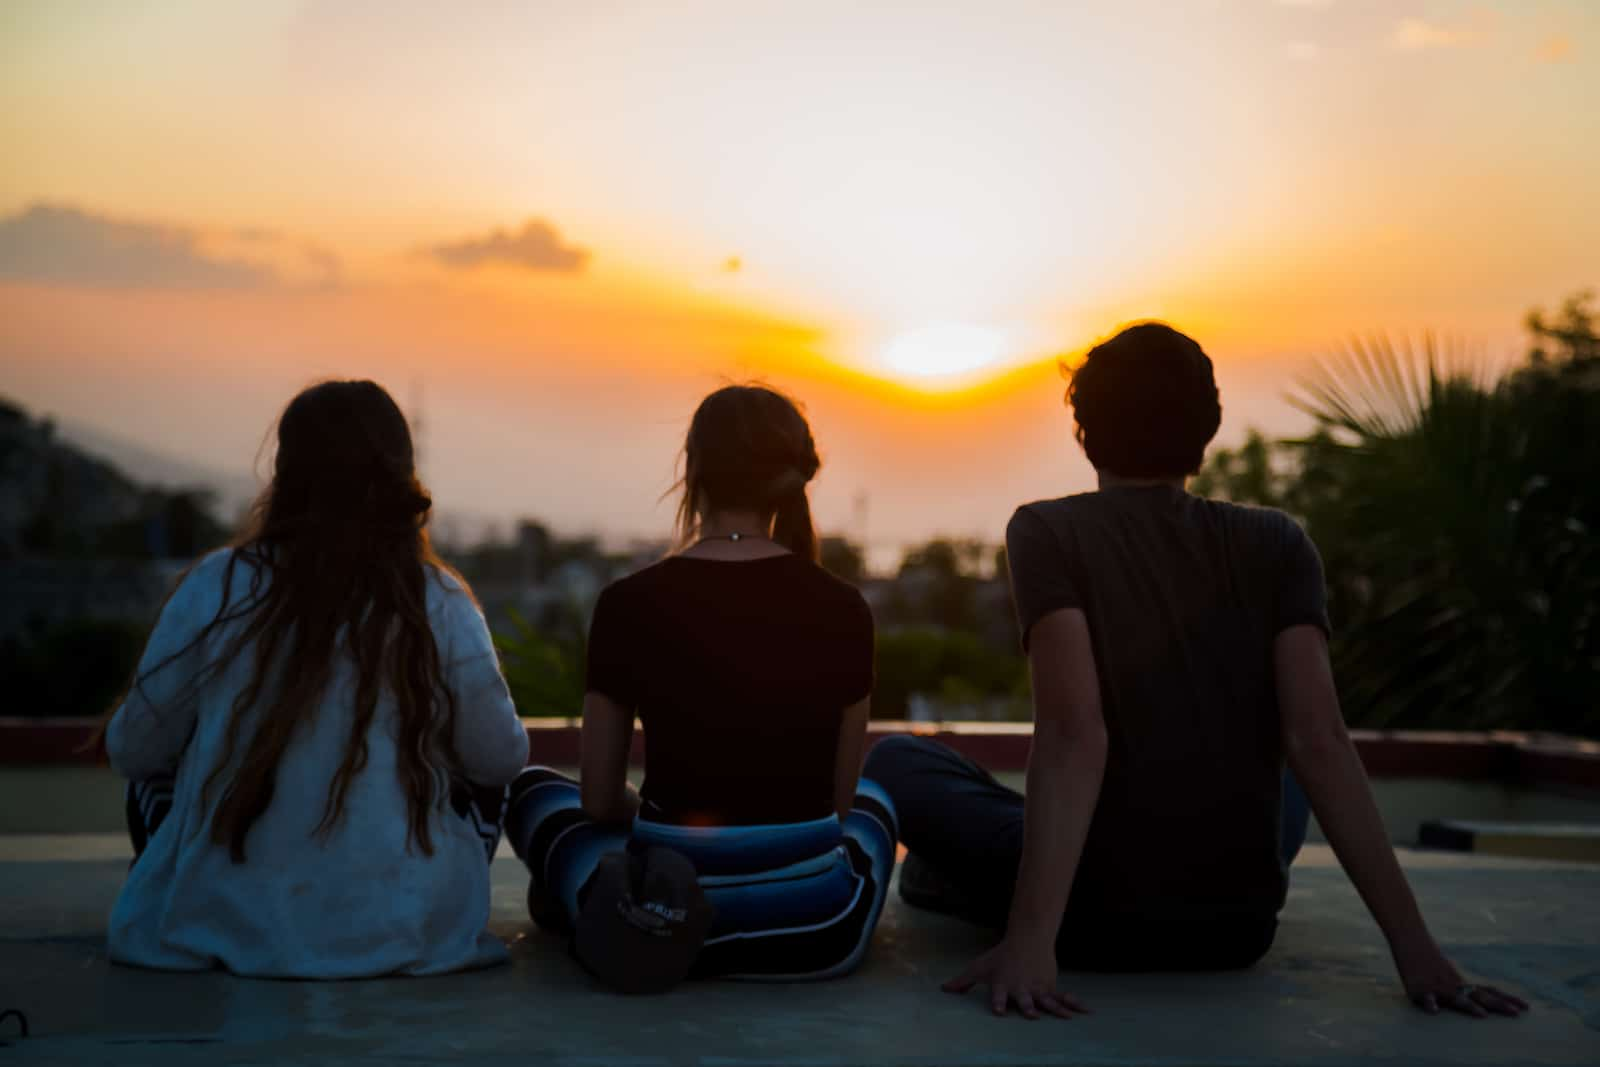 Three people sit cross-legged in front of a sunrise.